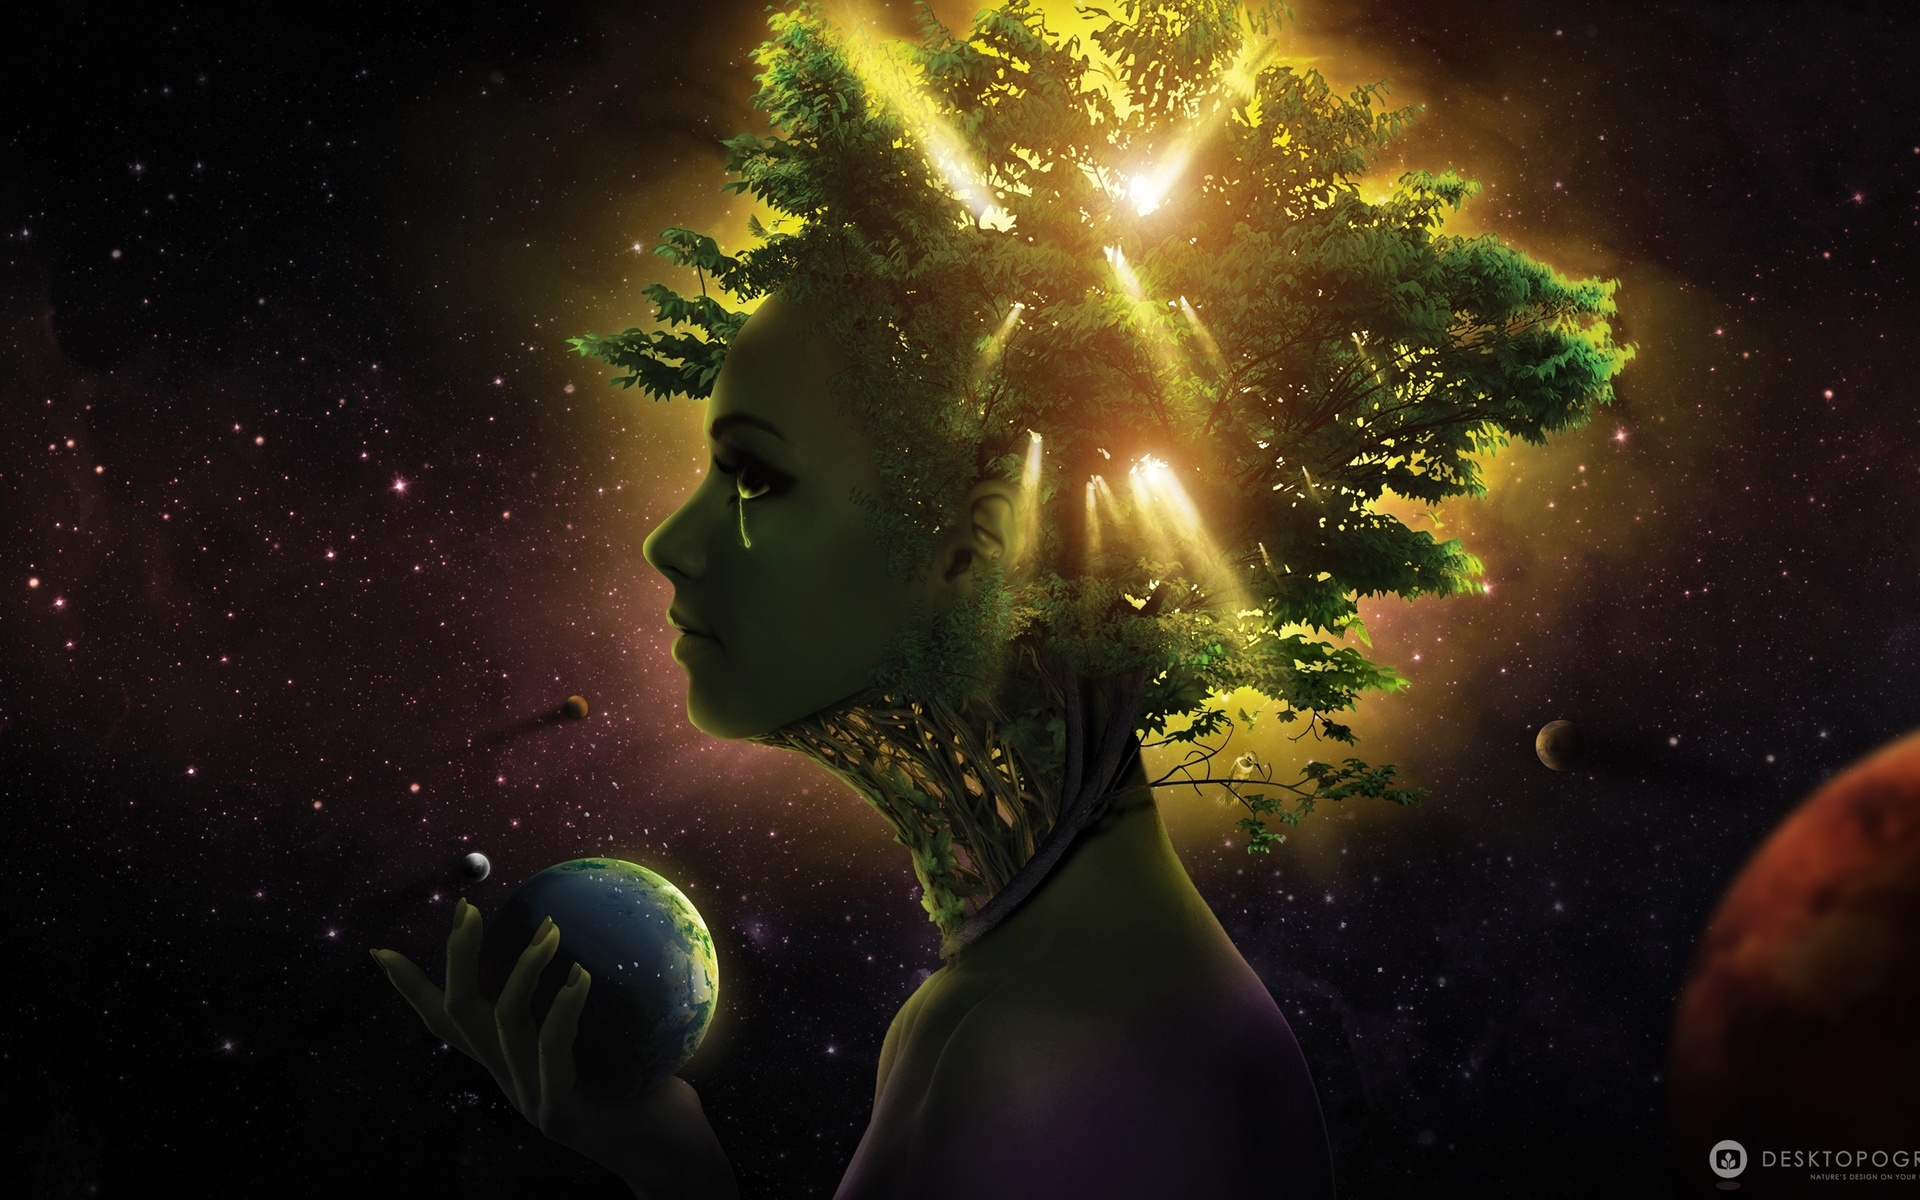 Universal soul wallpapers and images - wallpapers, pictures, photos